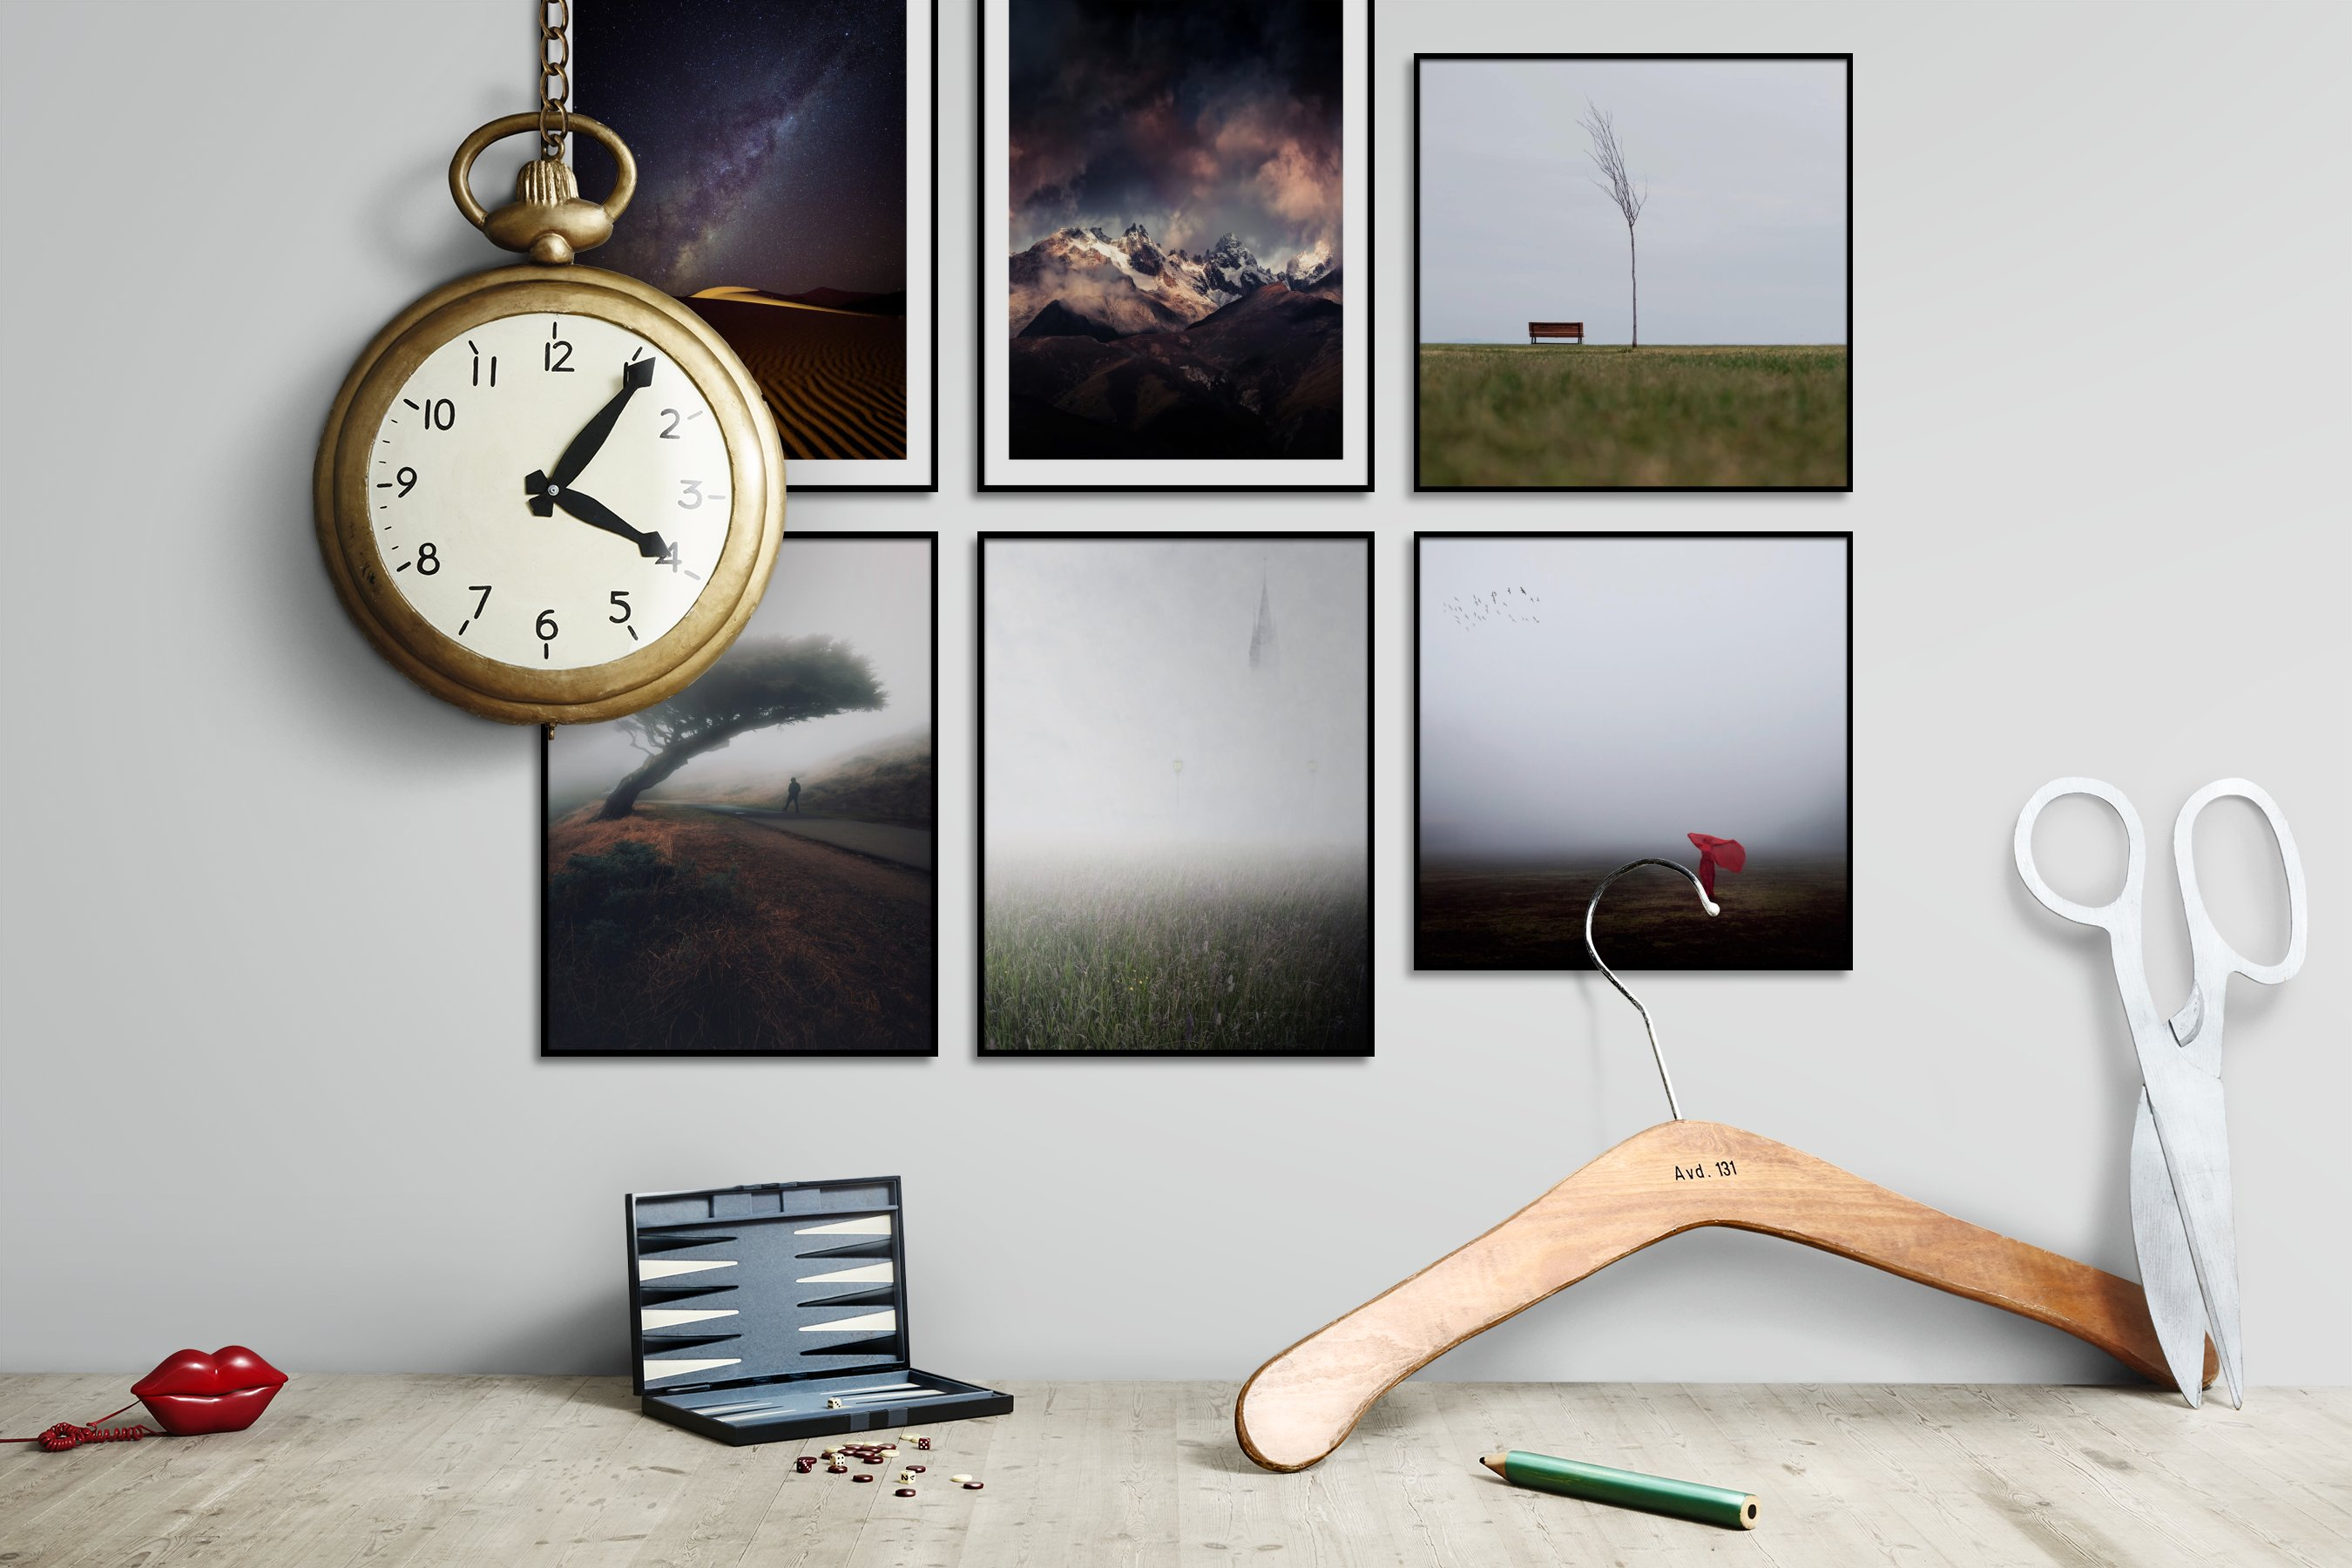 Gallery wall idea with six framed pictures arranged on a wall depicting Nature, For the Minimalist, Country Life, Mindfulness, and Artsy